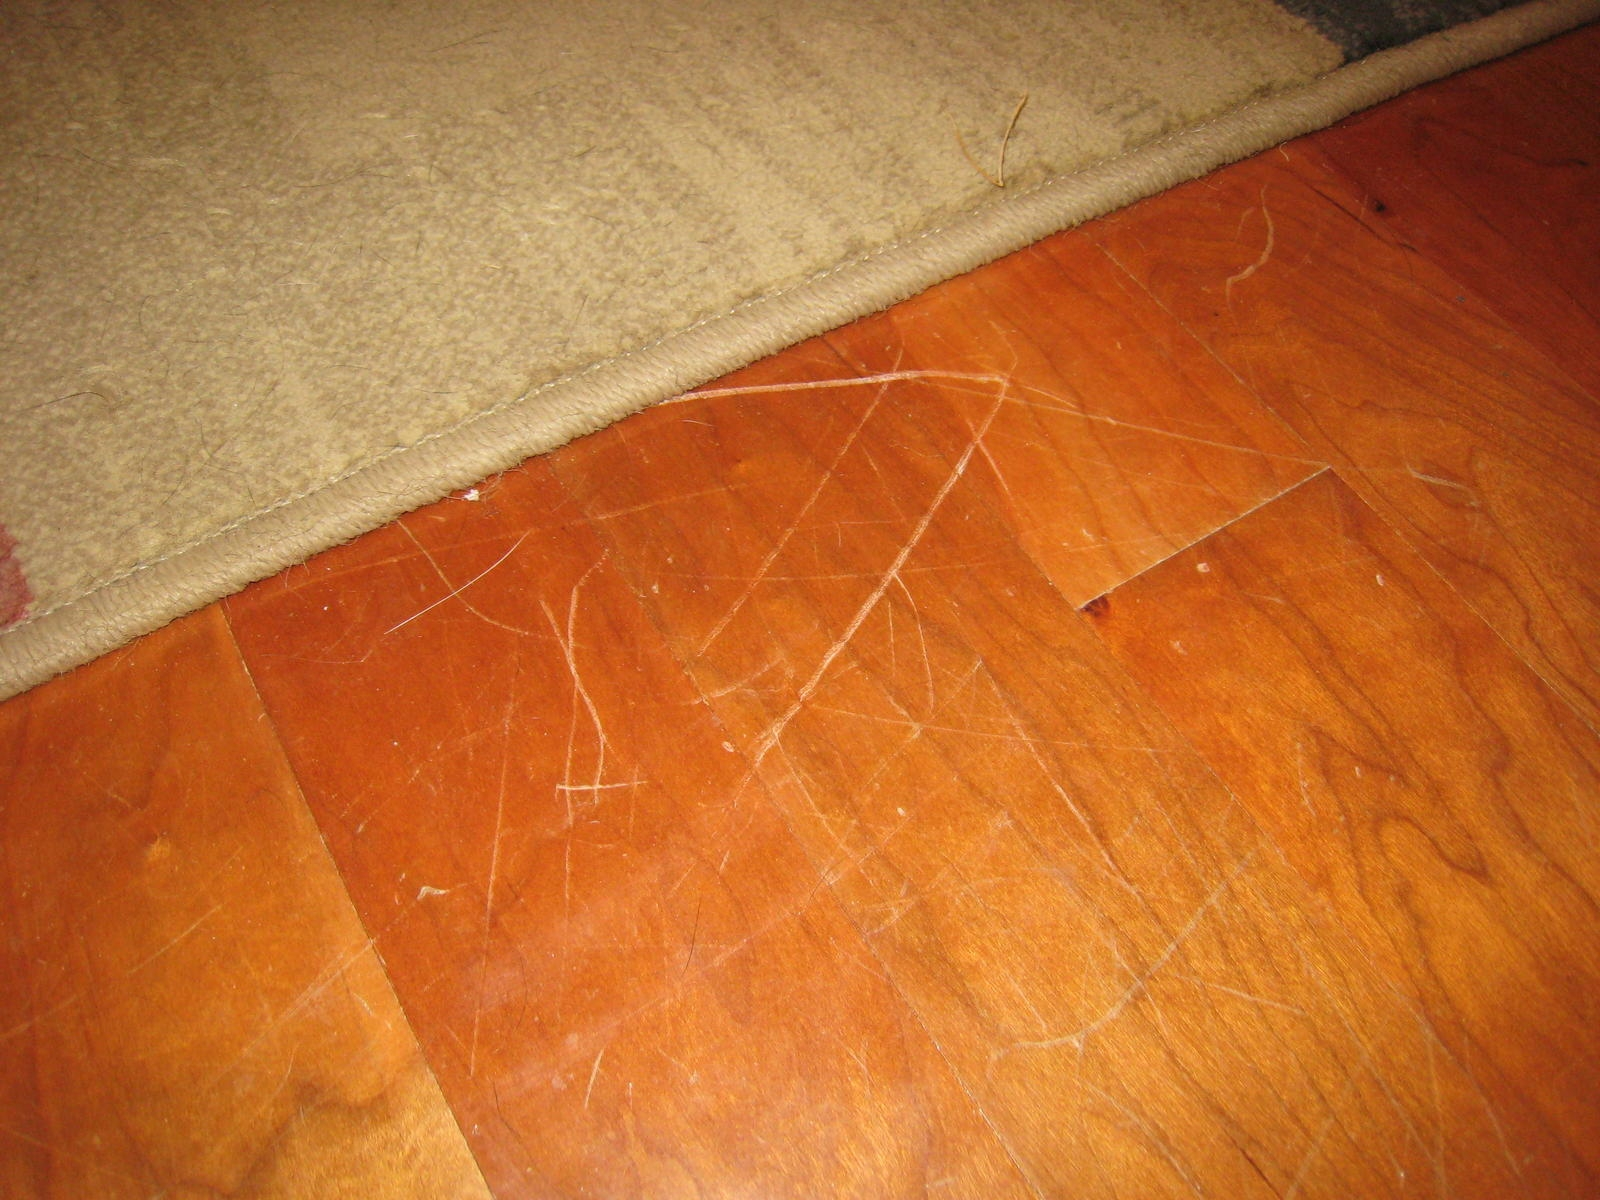 Paste Wax Wood Floor Scratches